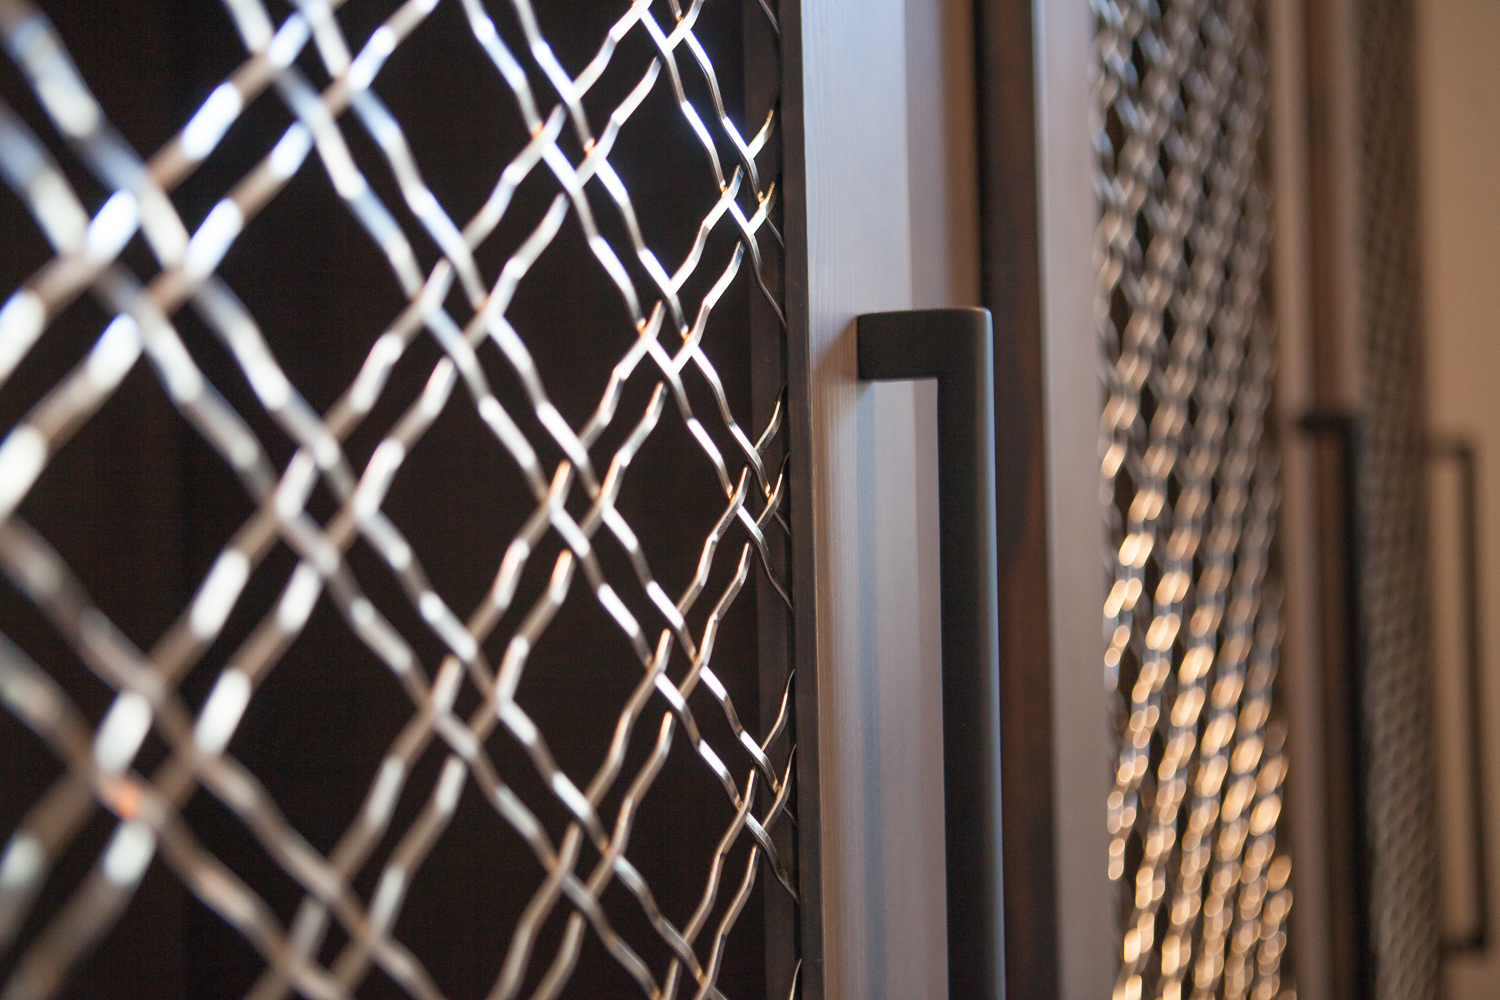 Entry Vestibule Lockers Metal Grill - Scott Christopher Homes, Sears Architects, Fuchsia Design